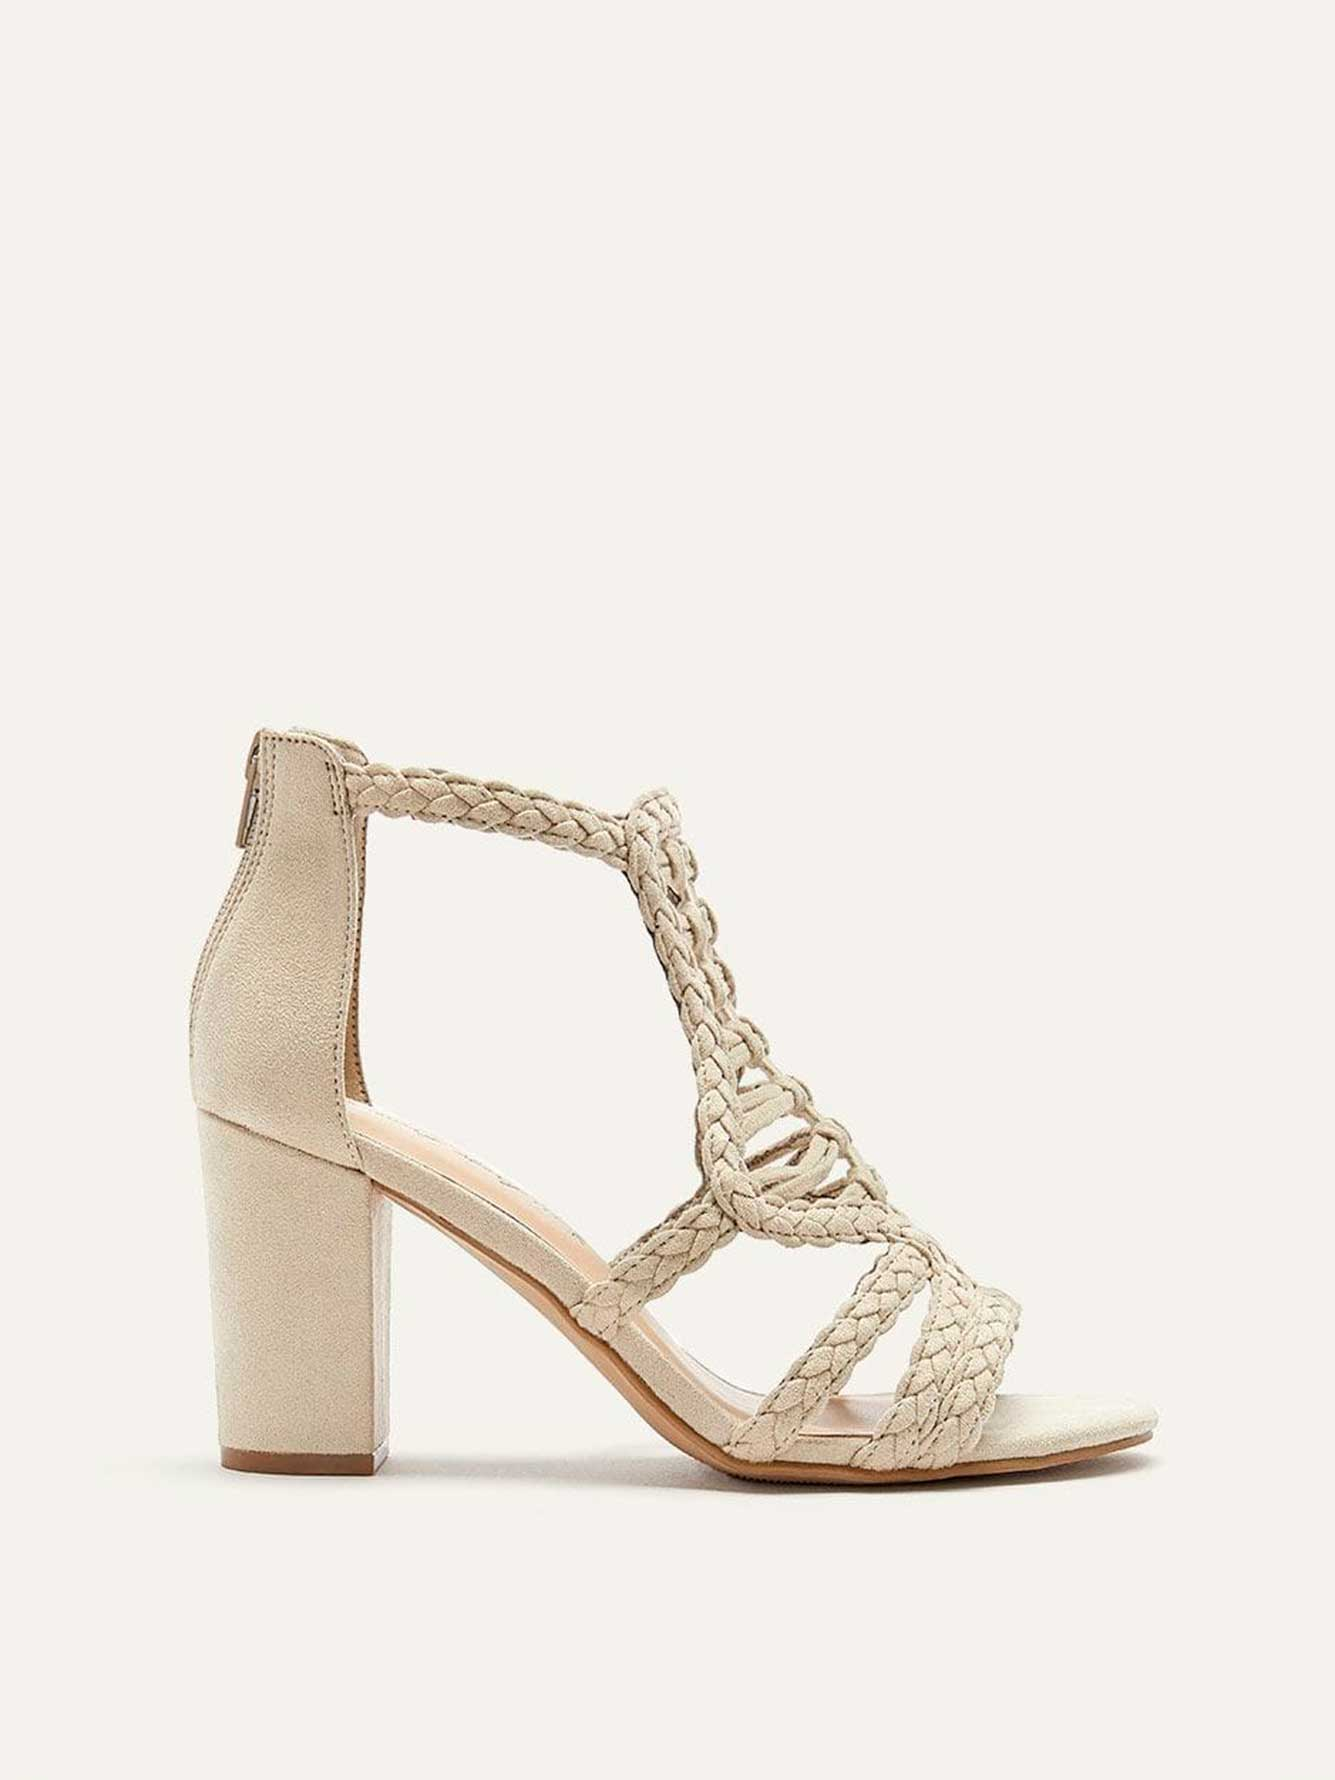 Wide Macramé Lace Block Heel Sandals